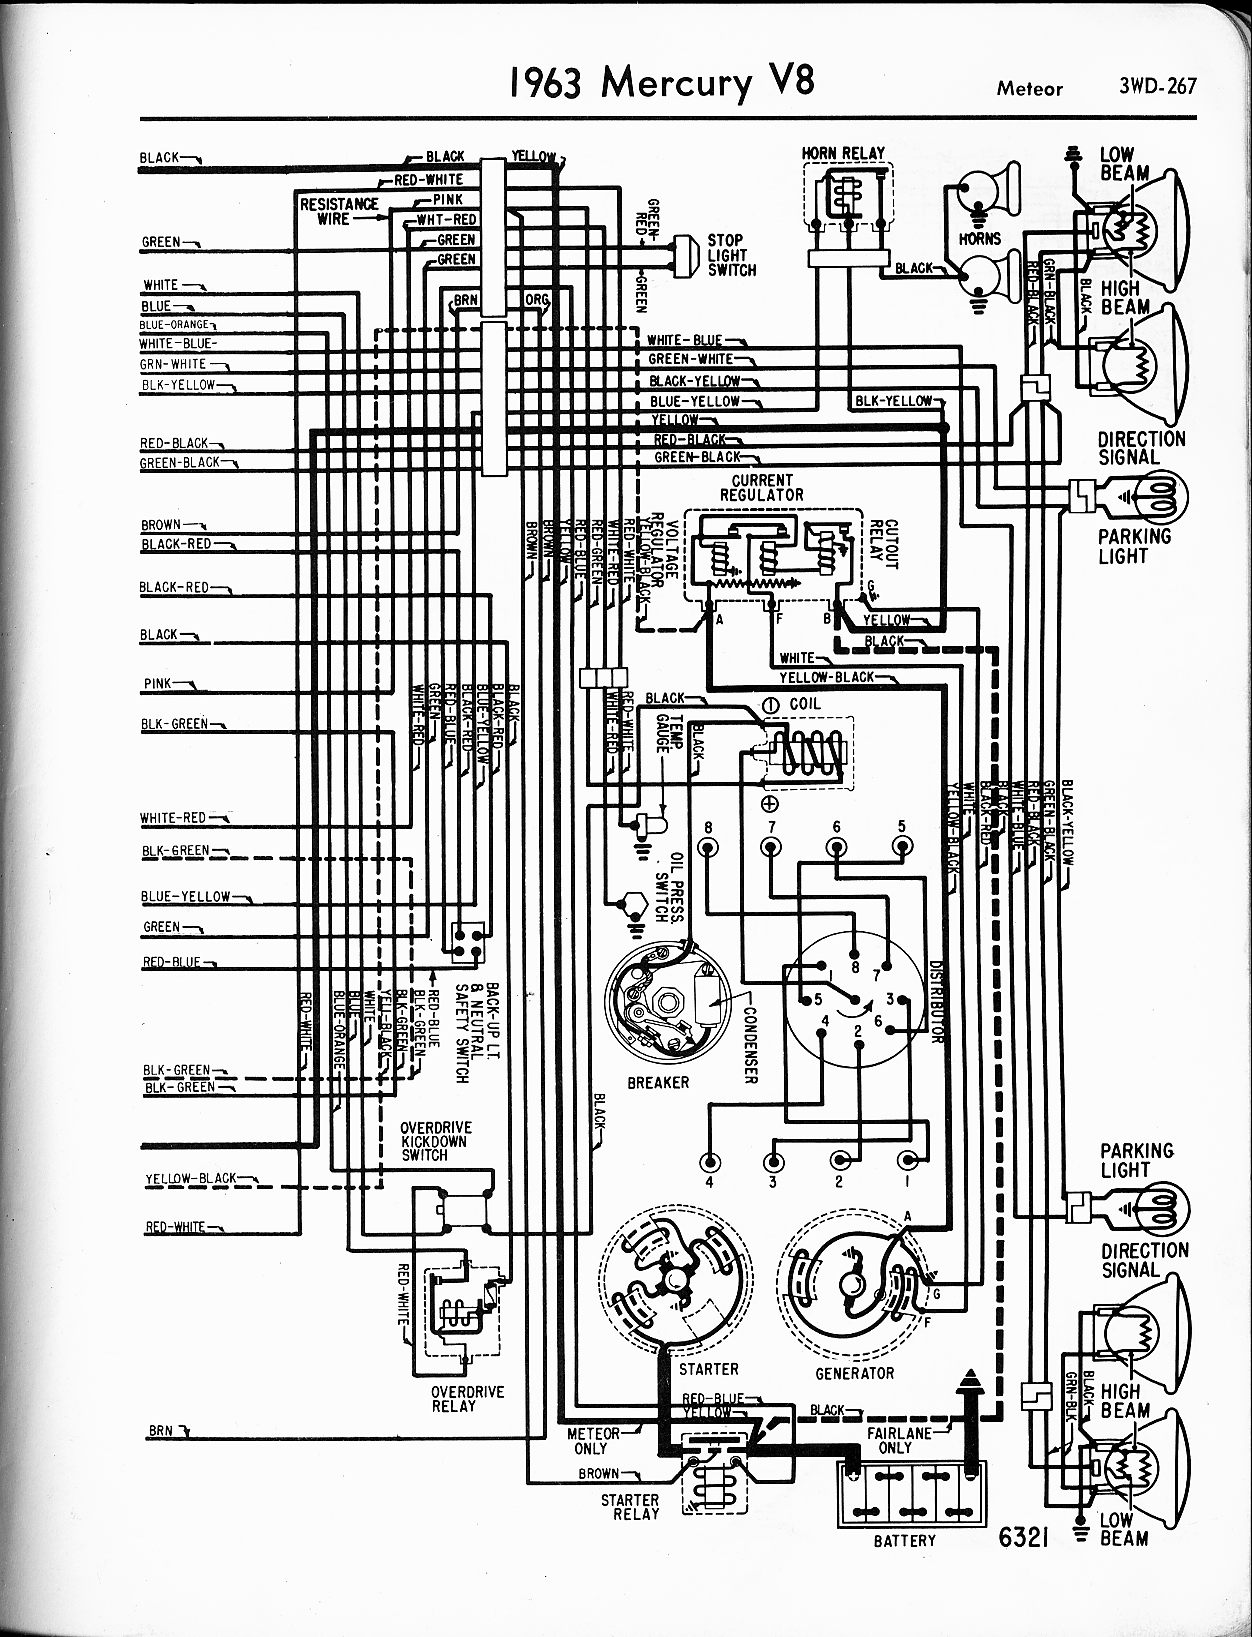 mercury wiring diagrams the old car manual project rh oldcarmanualproject com 2003 Chevy Impala Wiring Diagram 2003 Chevy Impala Wiring Diagram